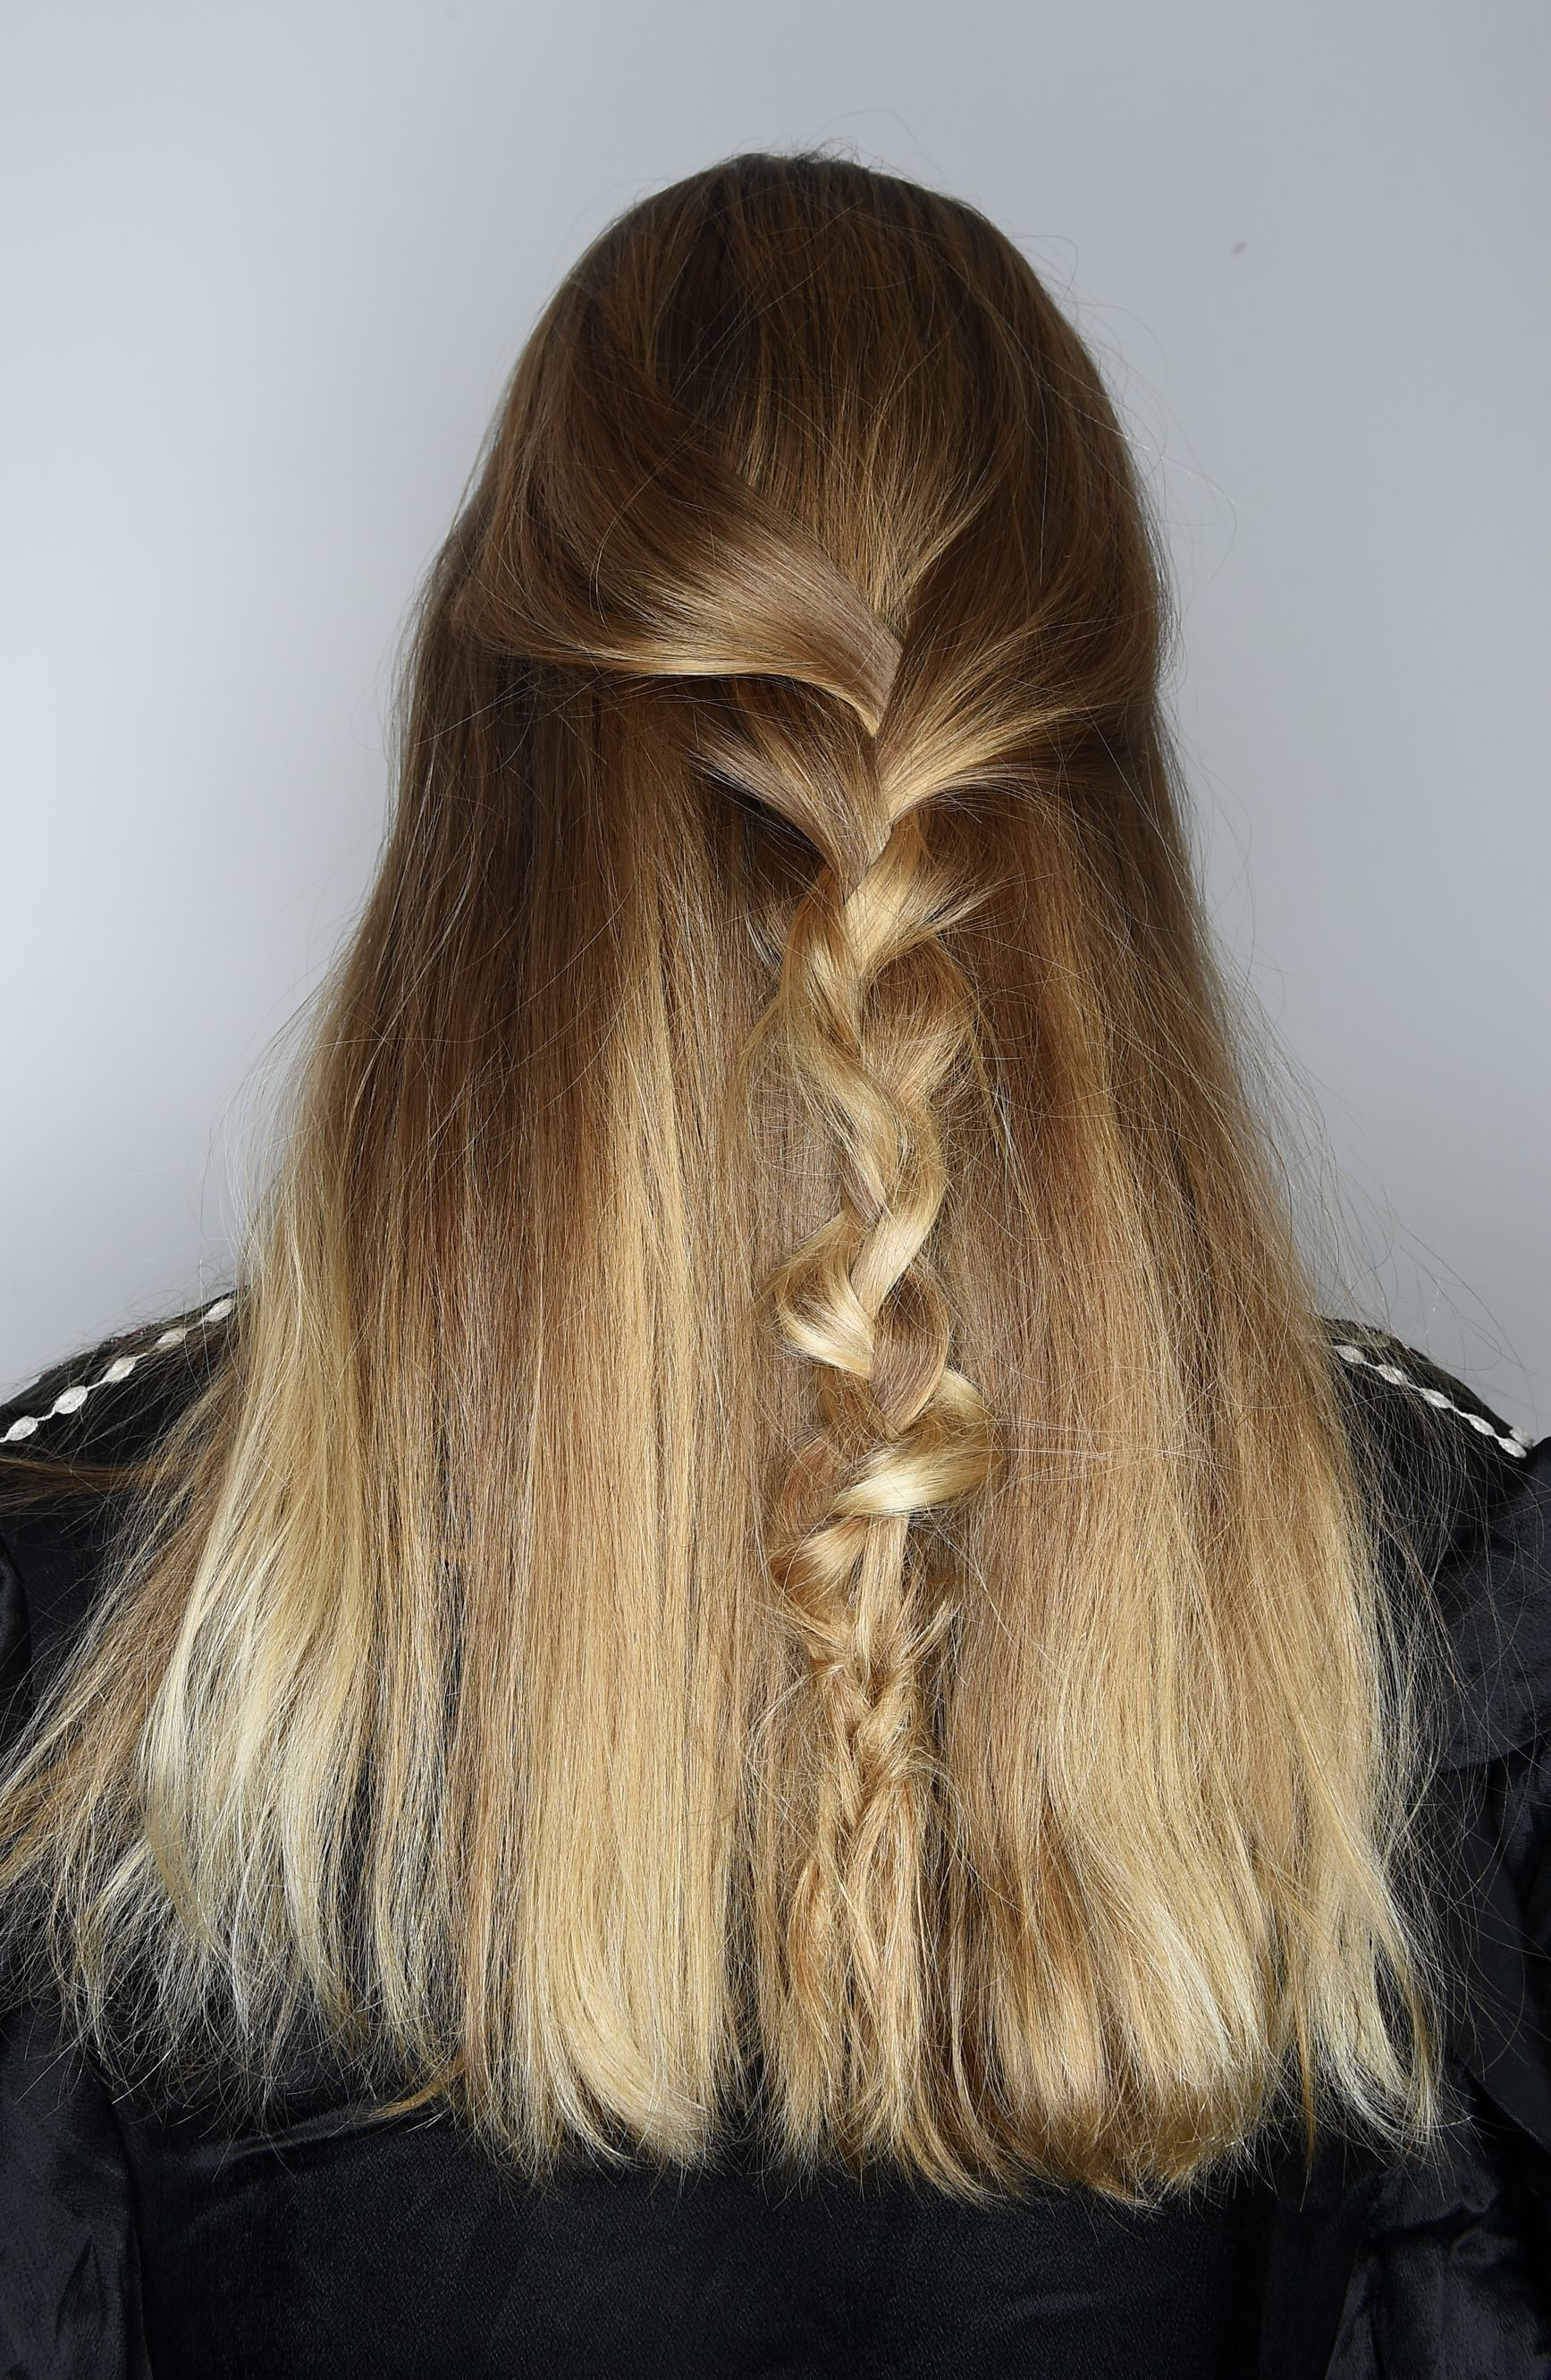 prom hairstyles: close up shot on model backstage with a half up half down twisted braid hairstyle